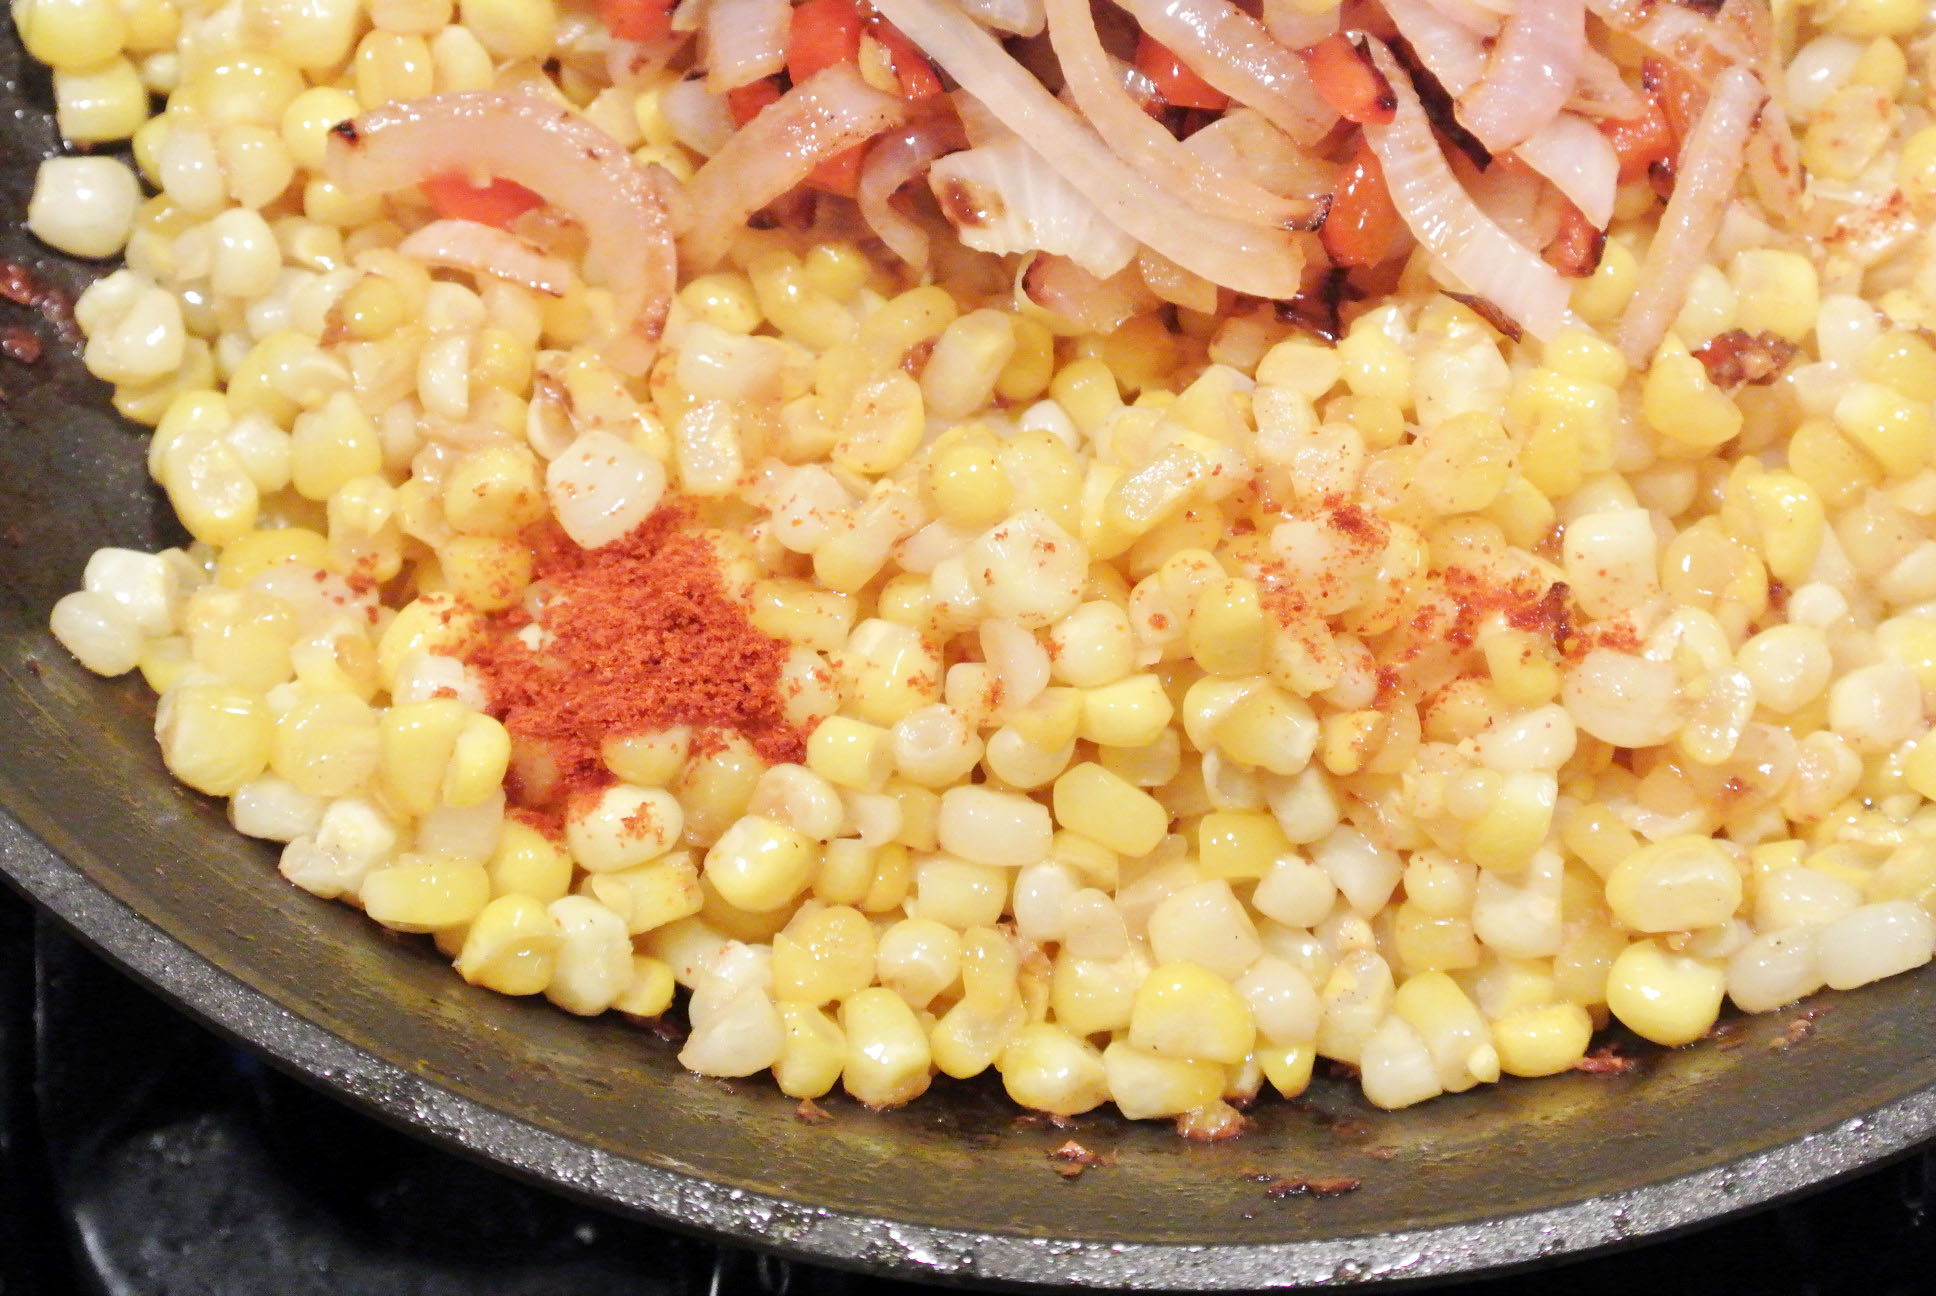 Roasted Corn with Jalapenos